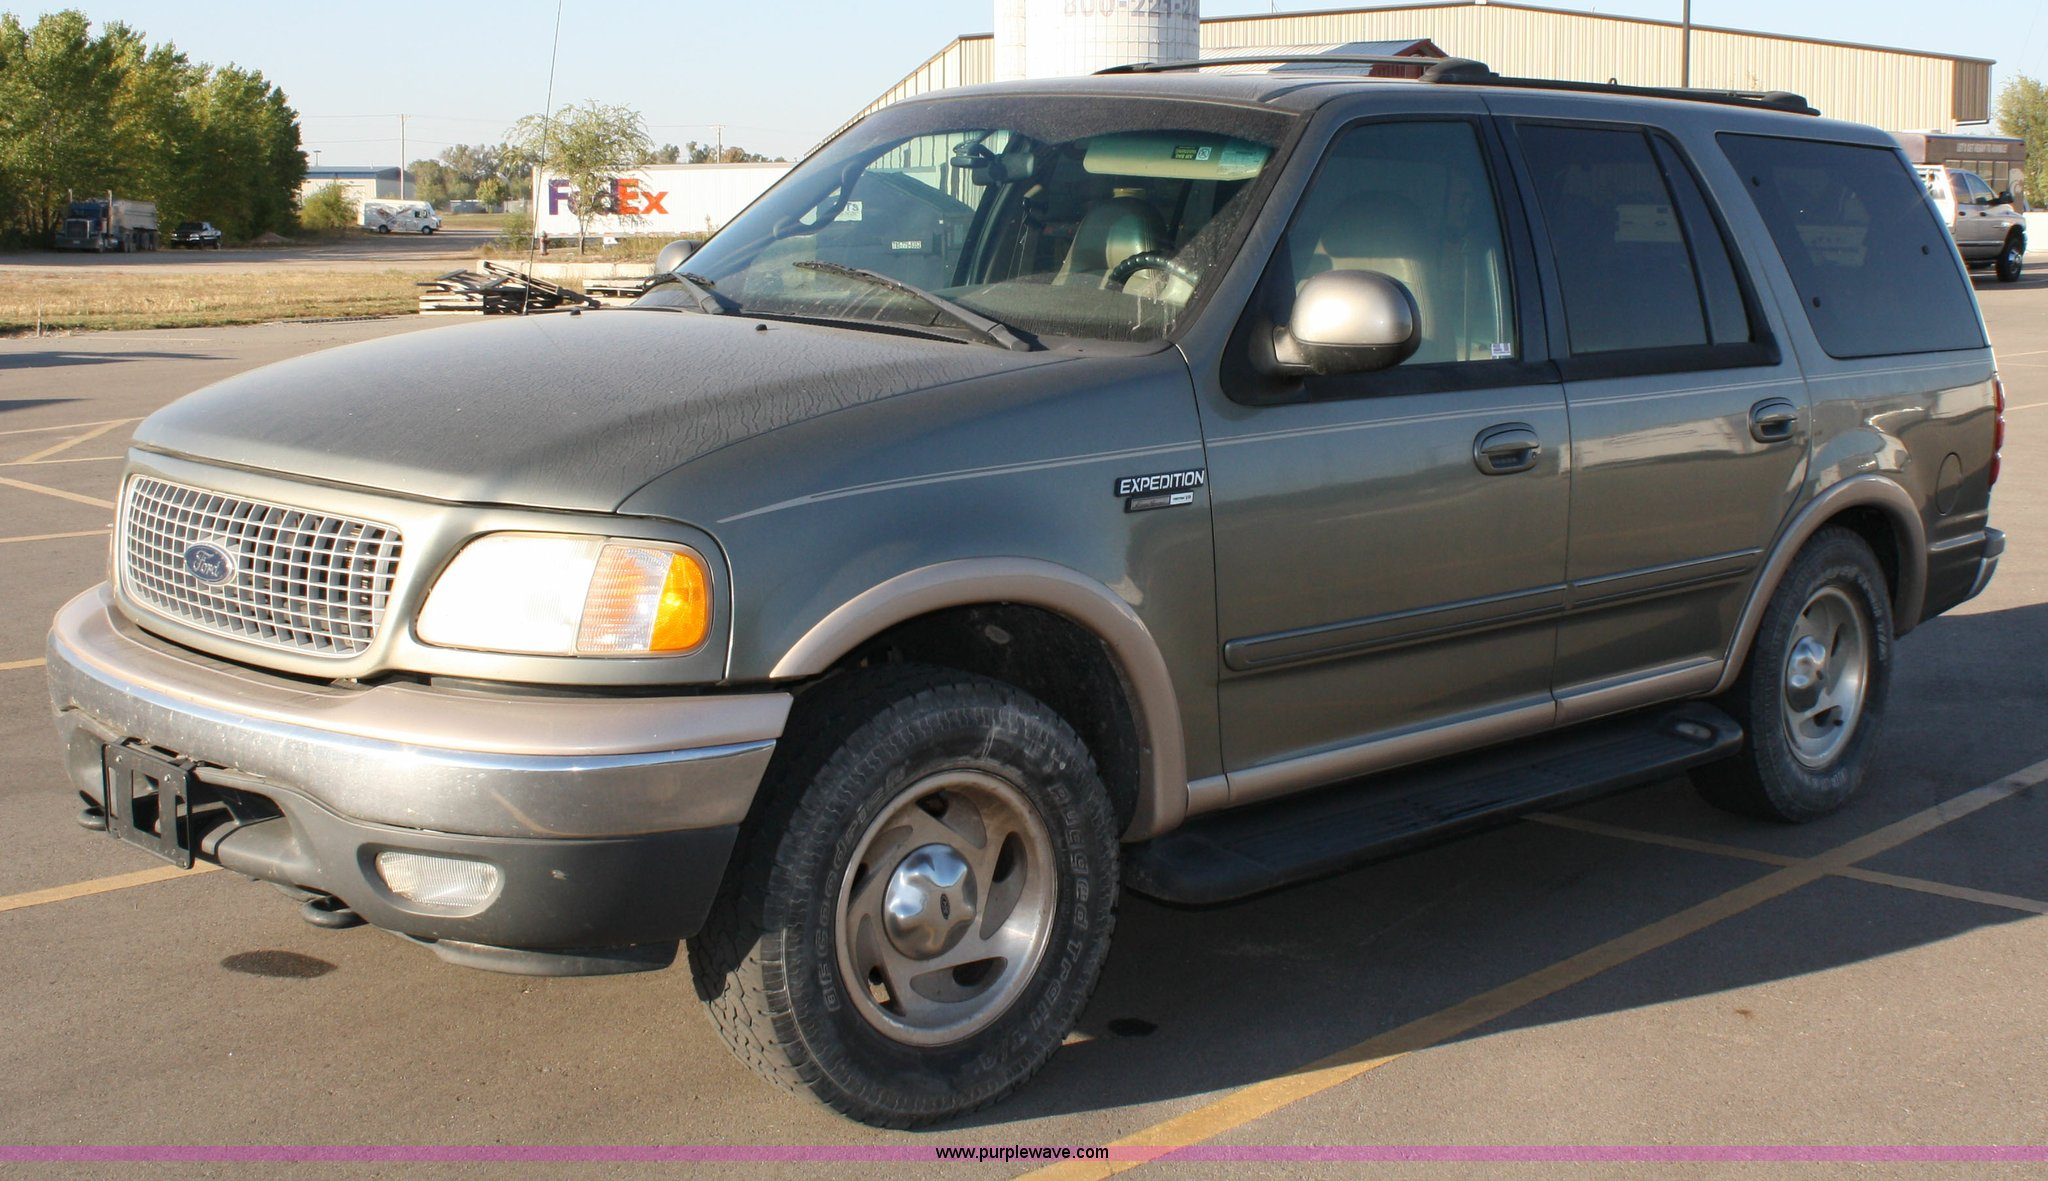 1999 ford expedition eddie bauer edition in manhattan ks item 4699 sold purple wave 1999 ford expedition eddie bauer